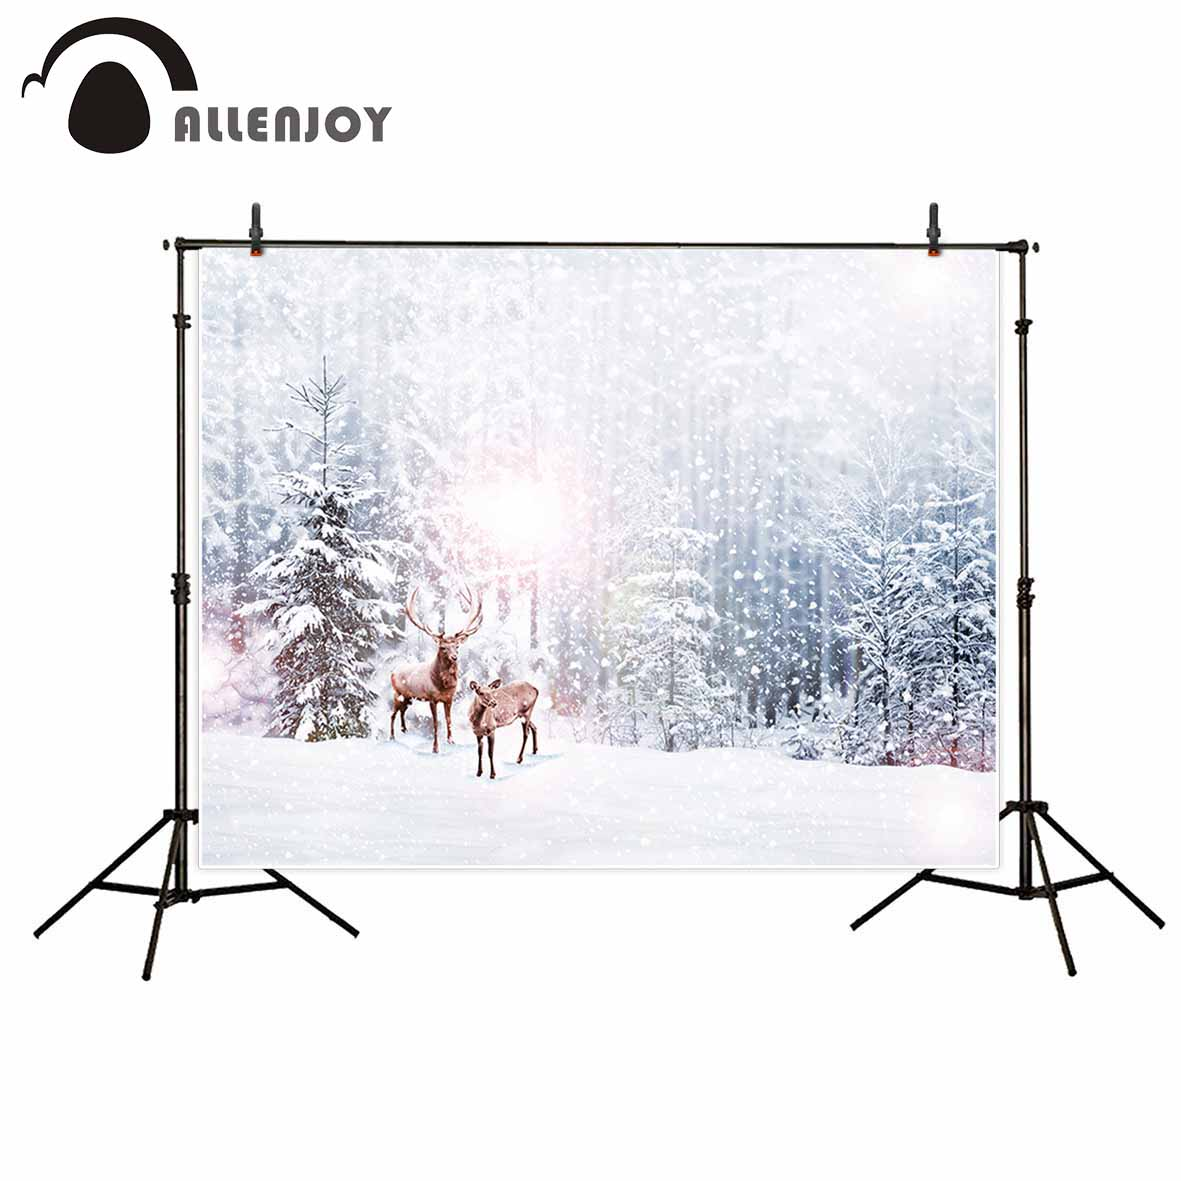 Allenjoy Winter background forest pine elk snow photography backdrops christmas decorations new backdrops photo studio александр дюма железная маска сборник